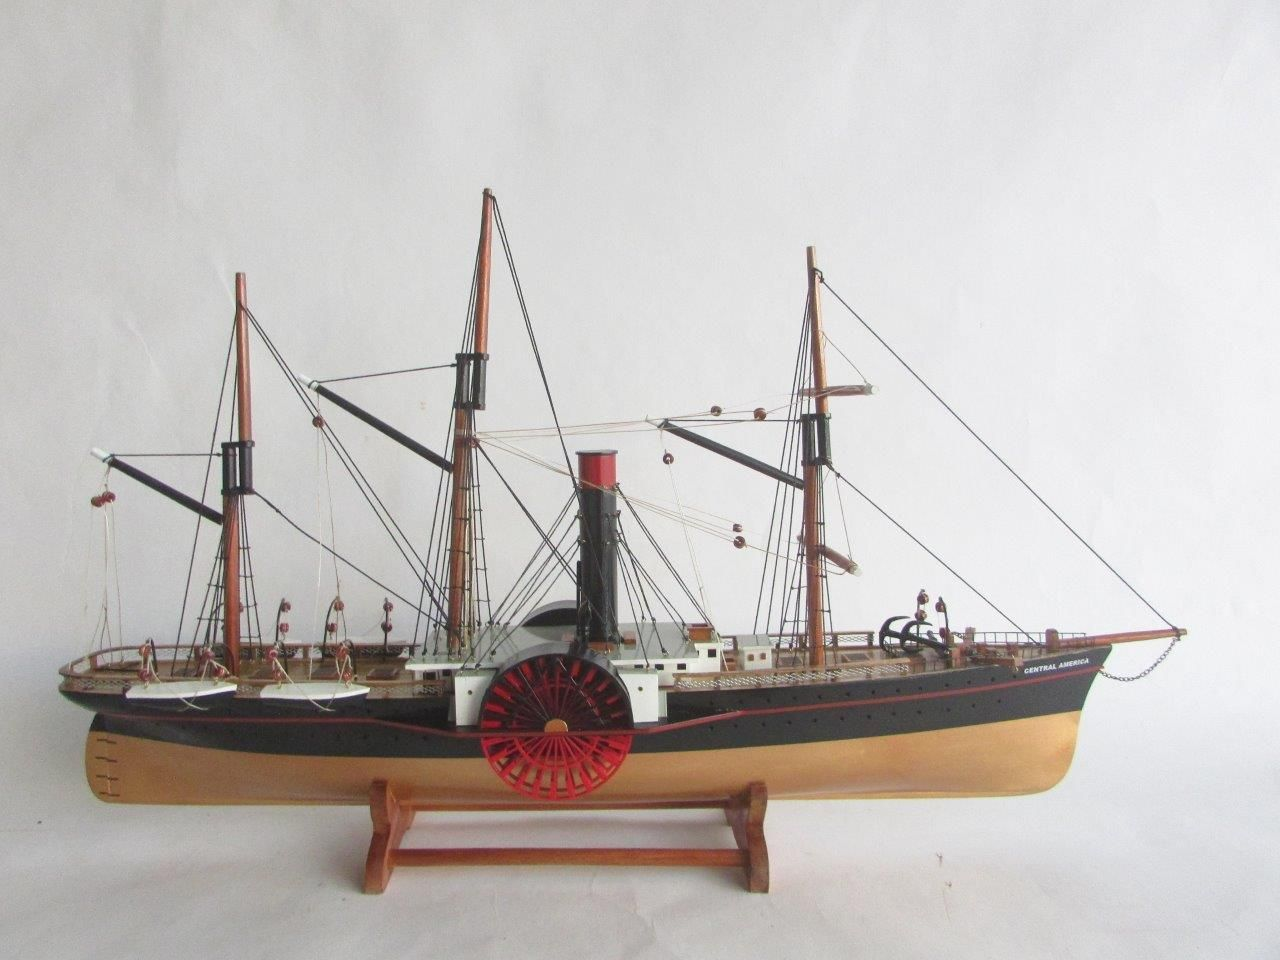 2053-13813-SS-Central-America-wooden-model-ship